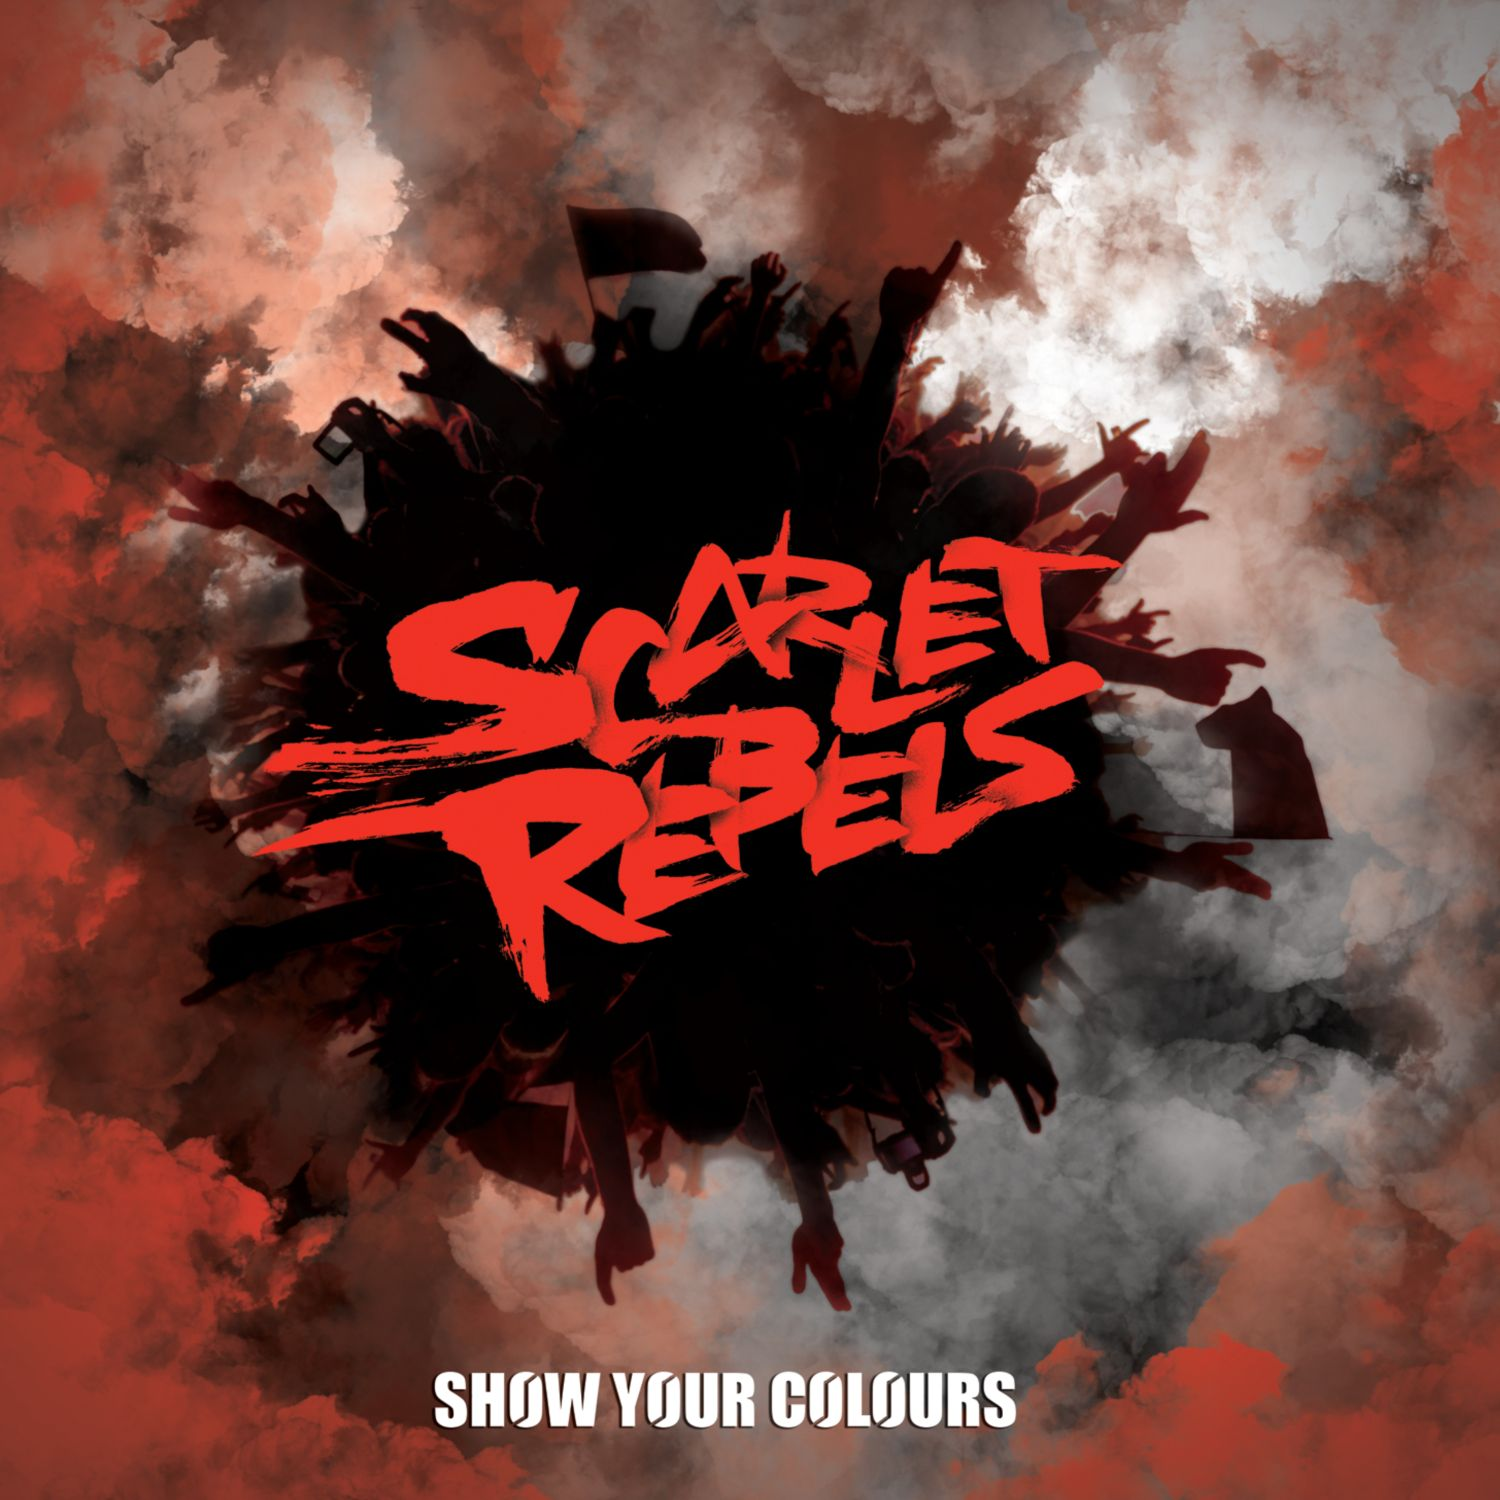 Scarlet Rebels - Show Your Colours - coverart